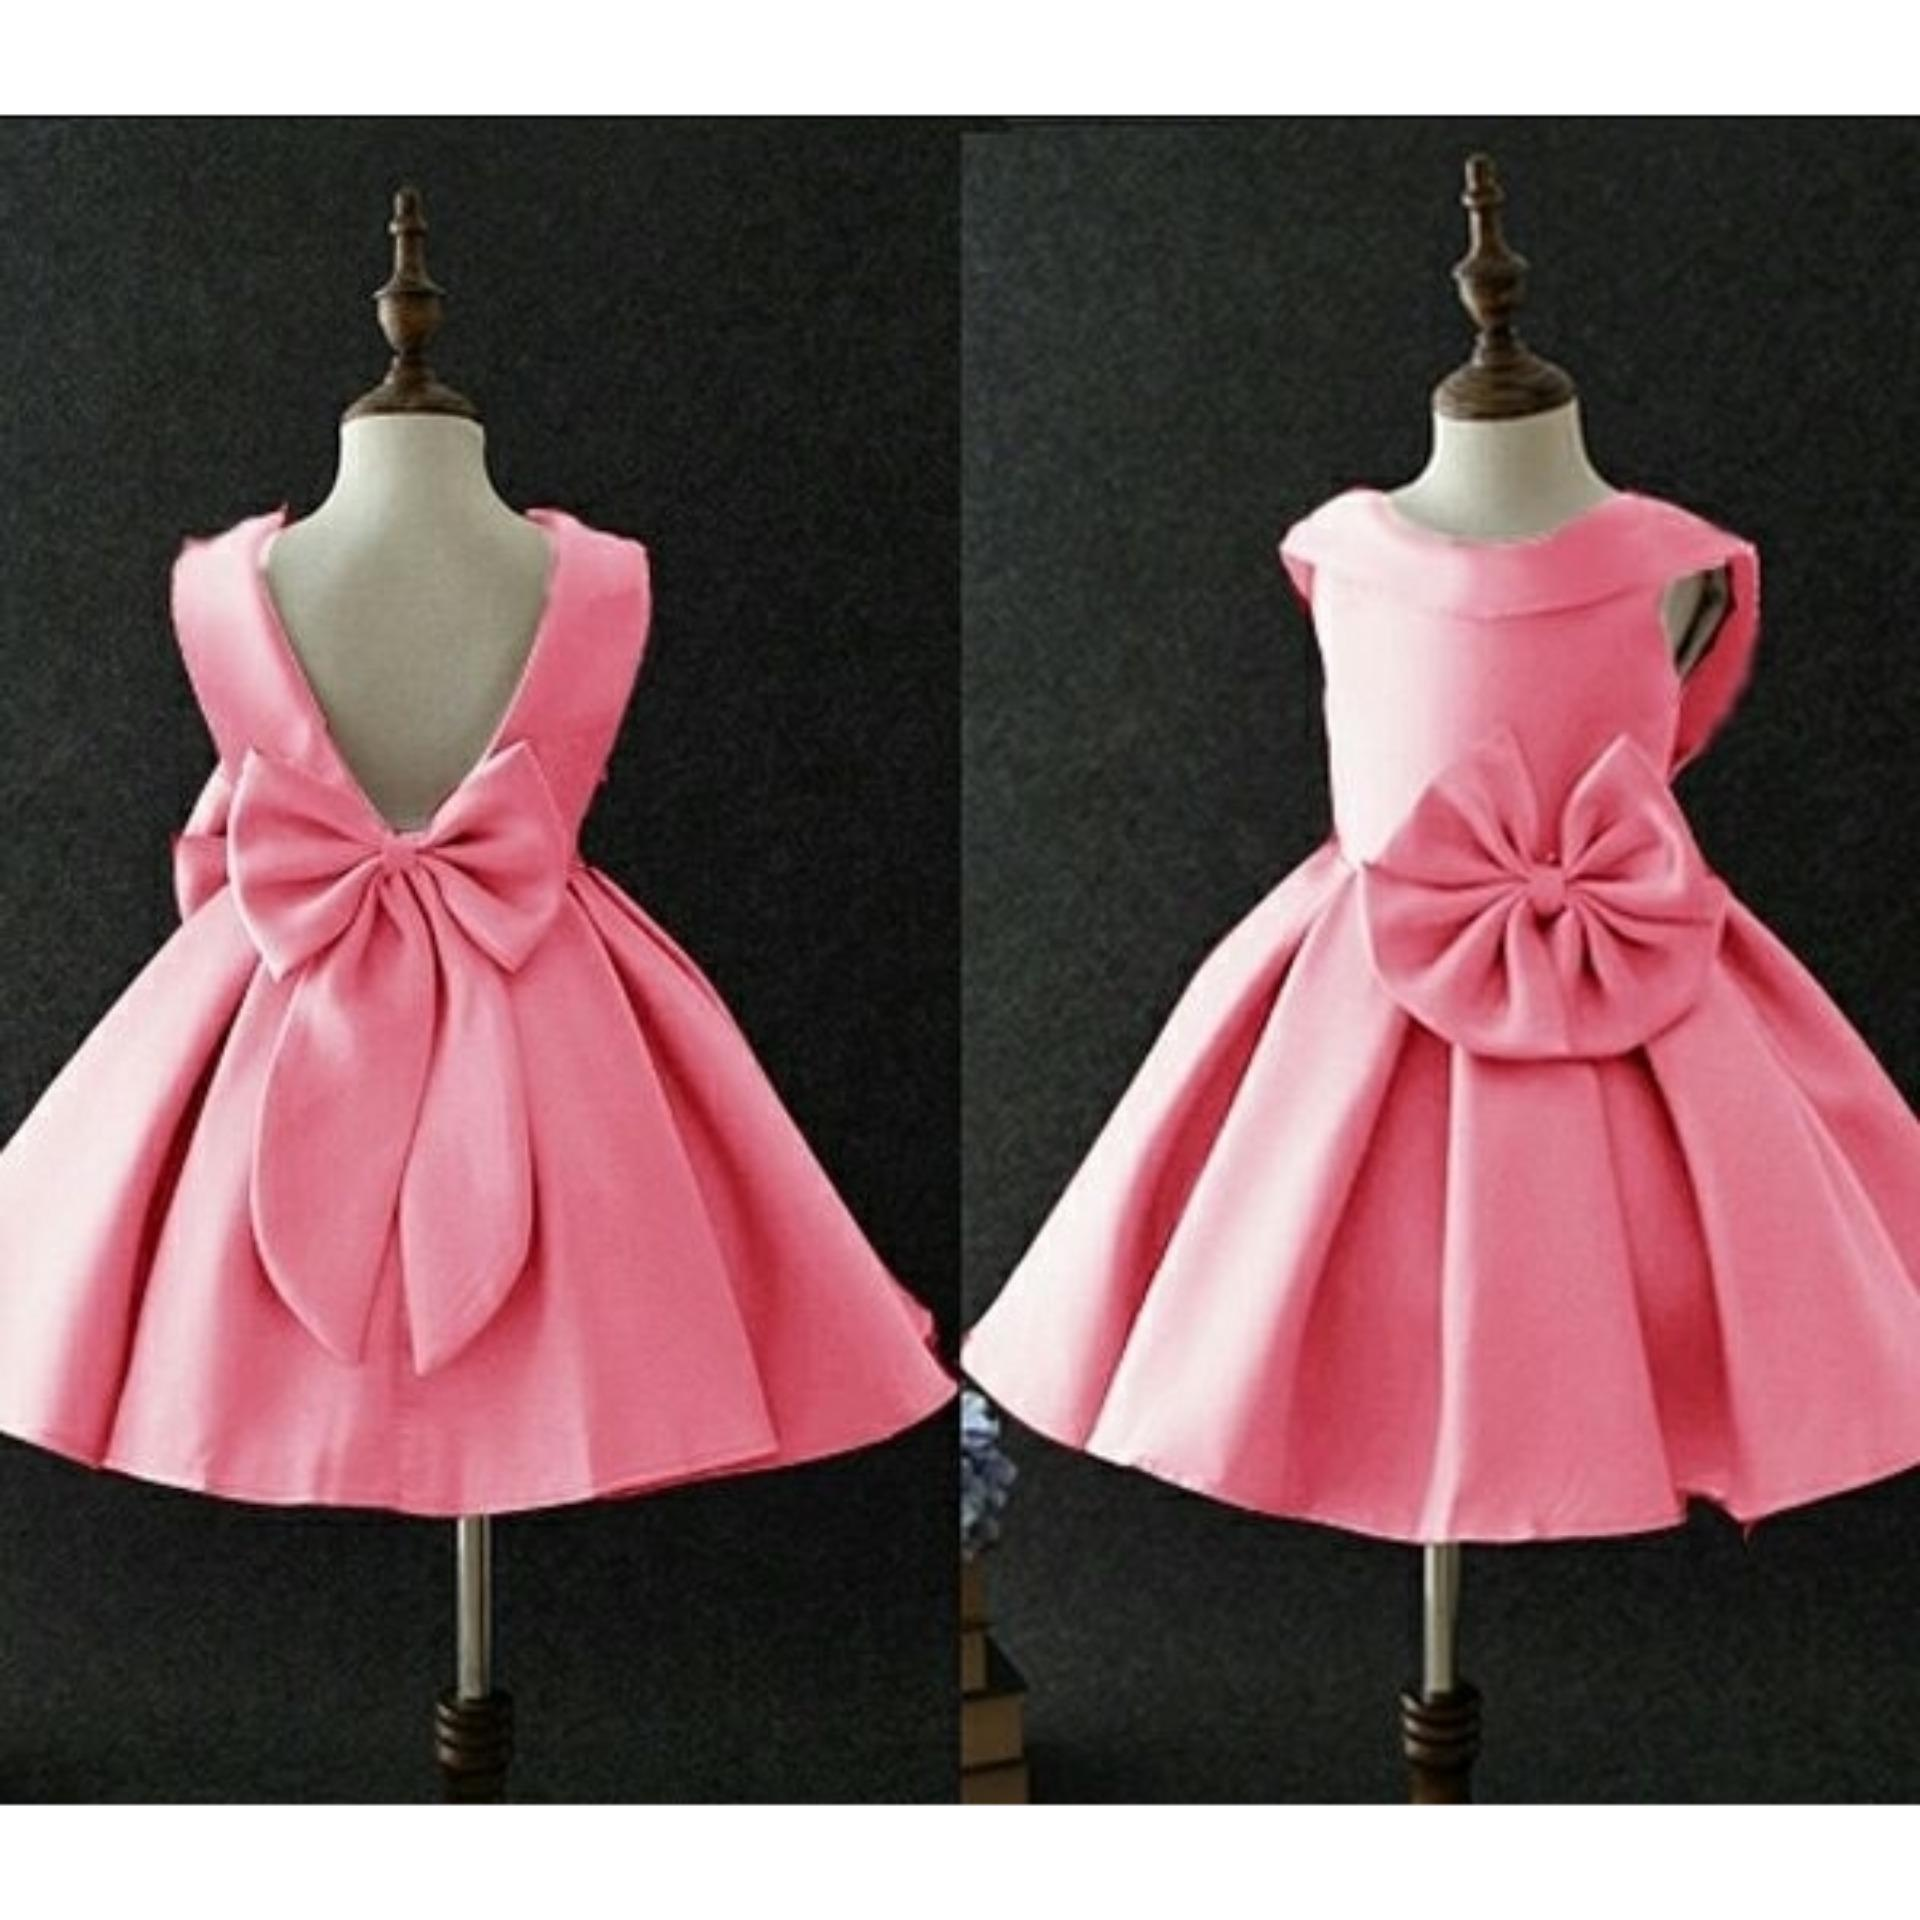 Dress Anak Lauren / Dress Pesta Anak